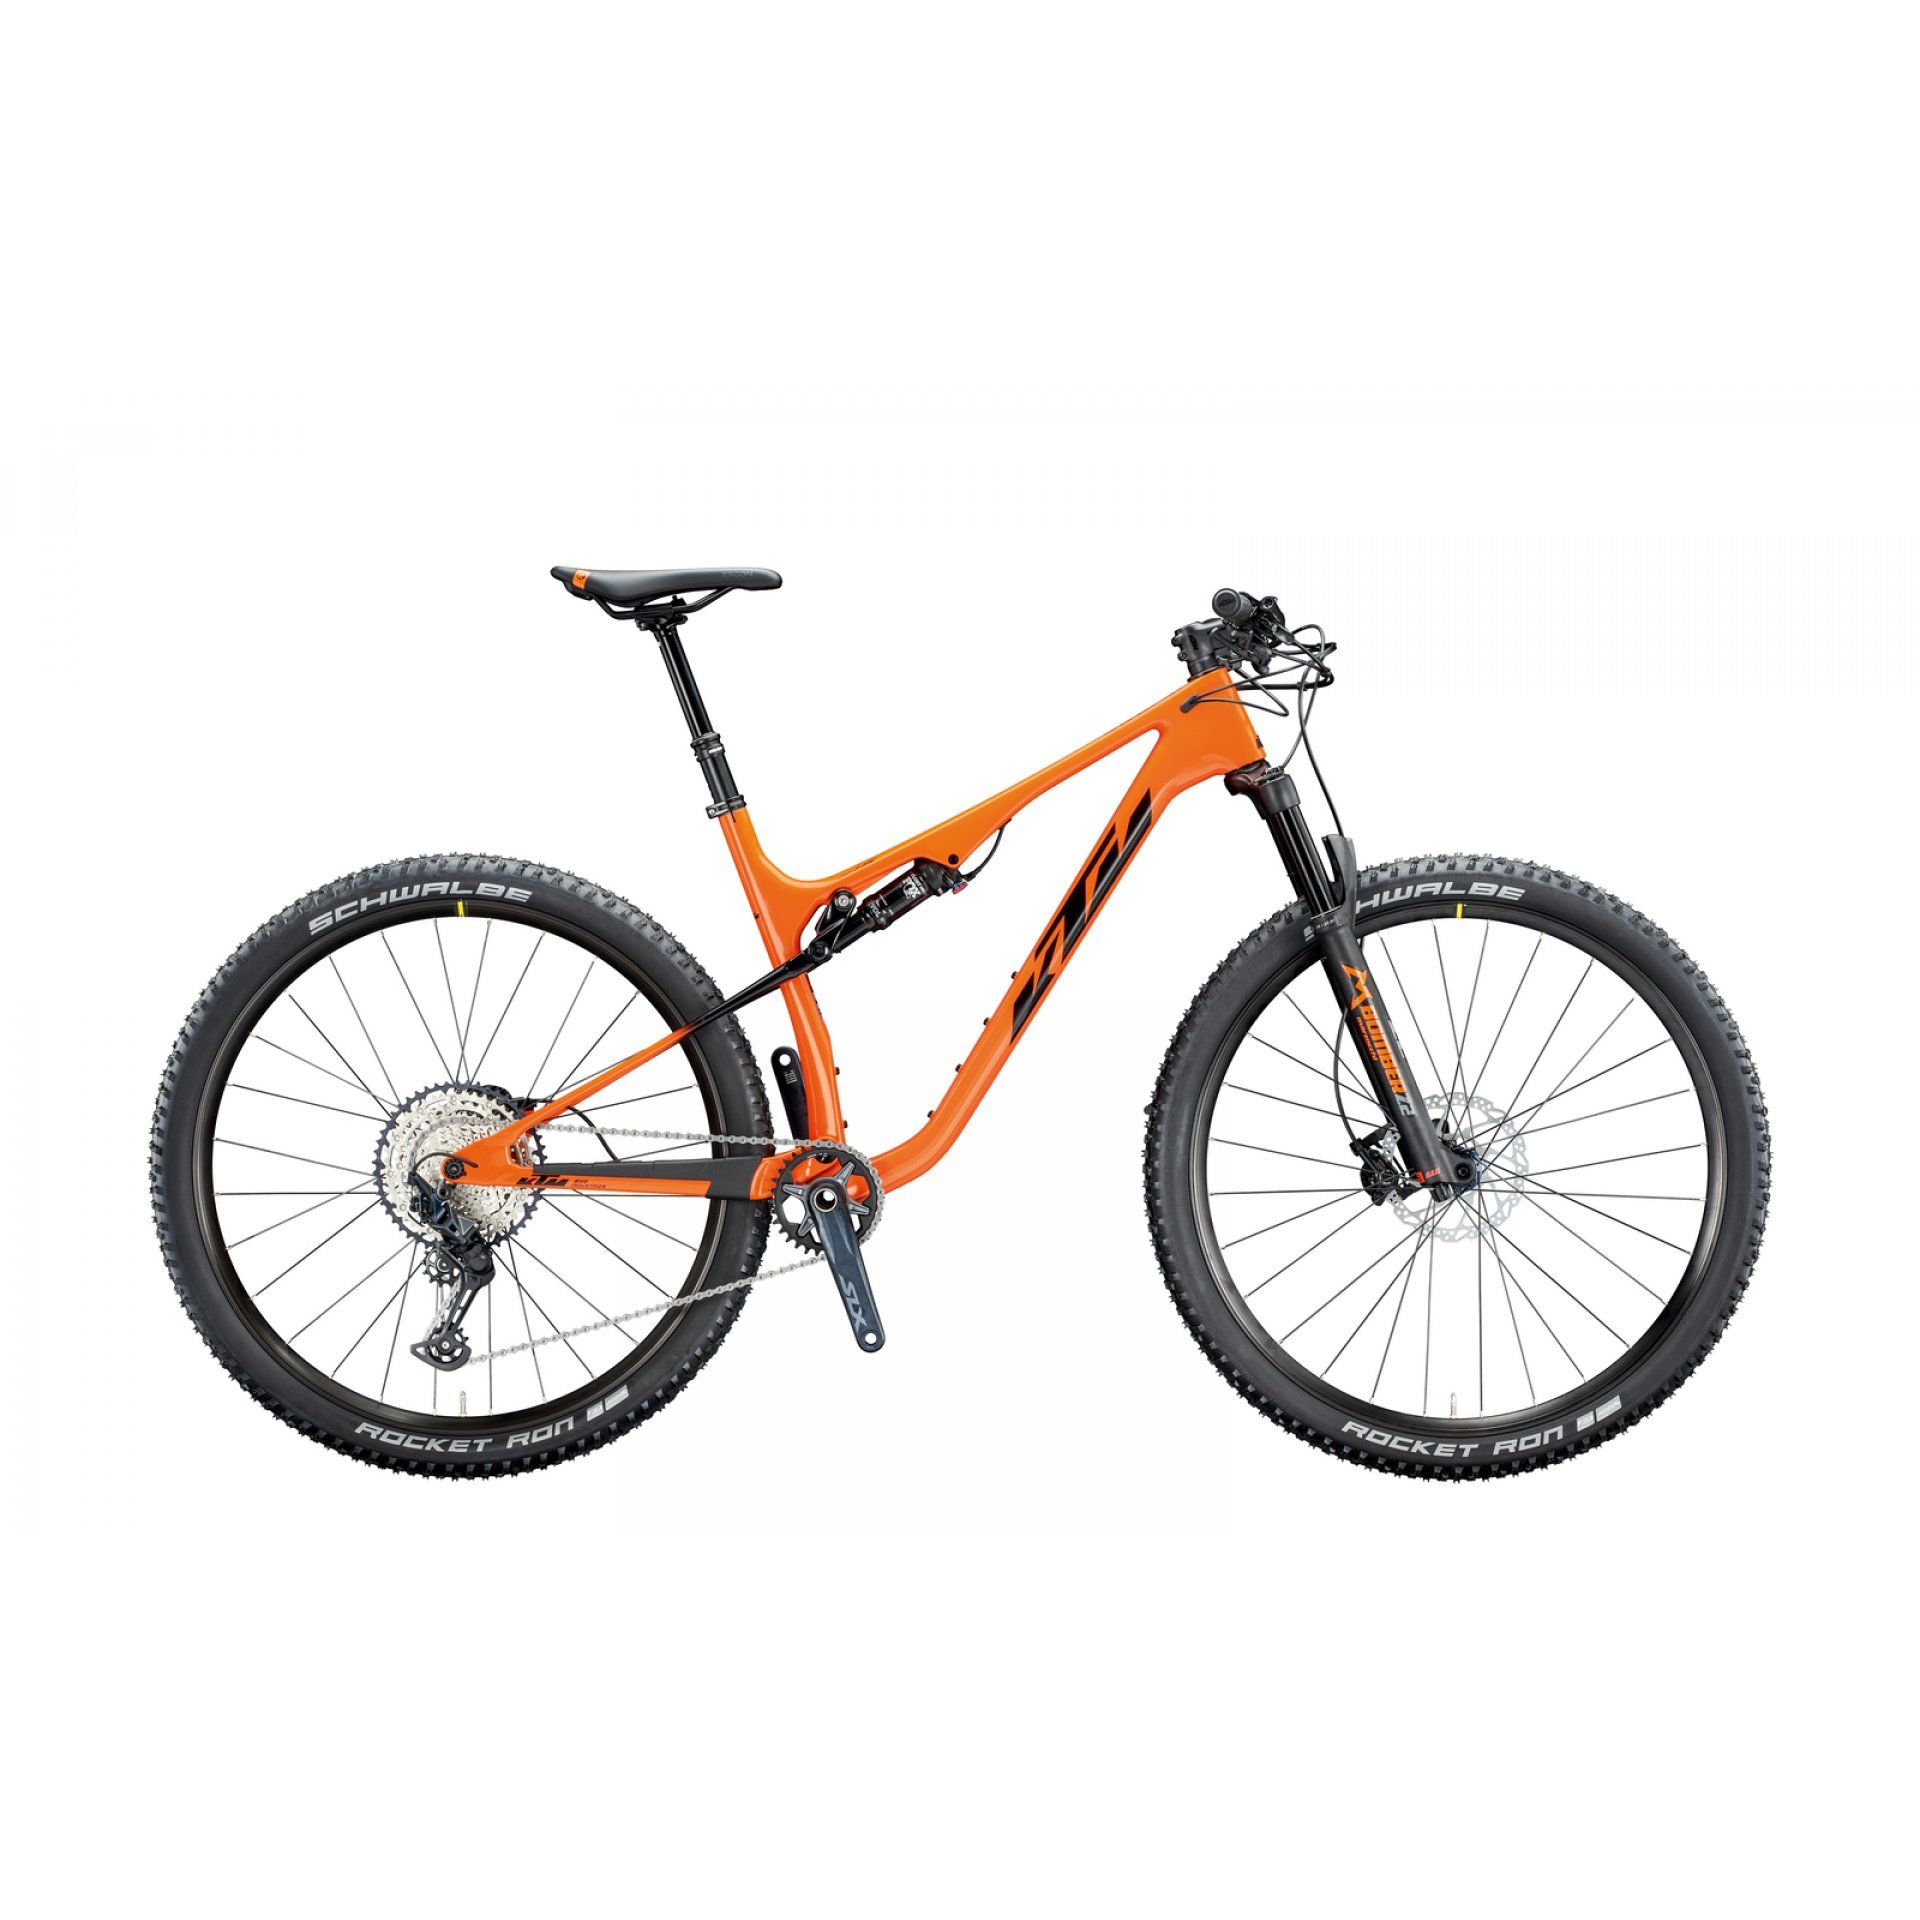 ROWER KTM SCARP MT ELITE ORANGE|BLACK 201141